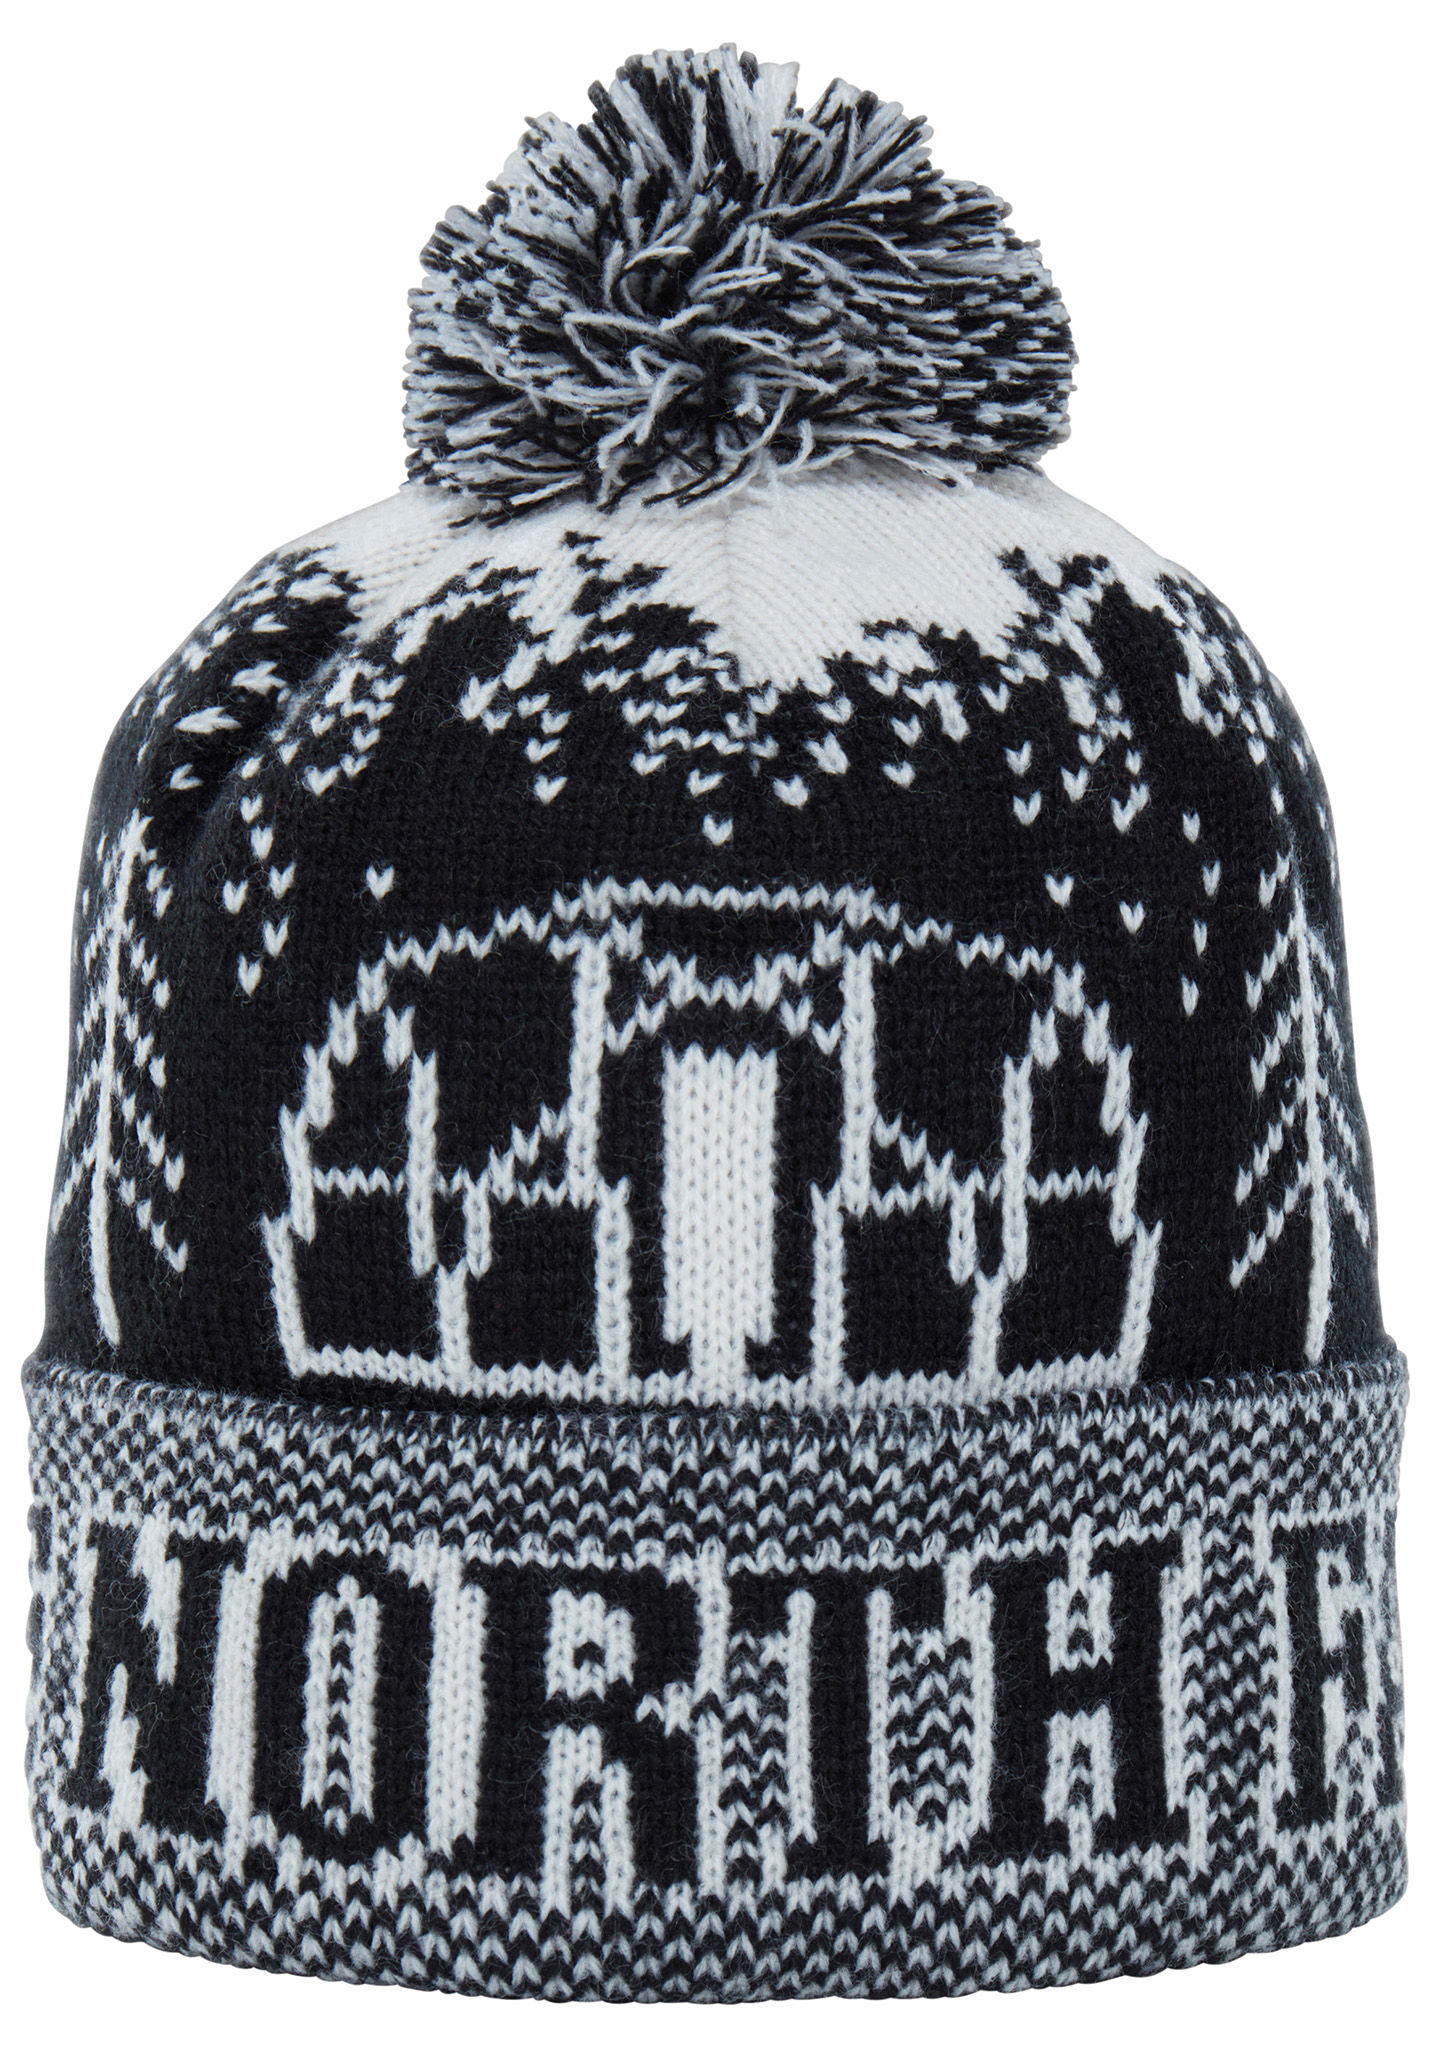 8e59bc202f5 THE NORTH FACE Fair Isle Pom Pom - Beanie for Men - Black - Planet Sports